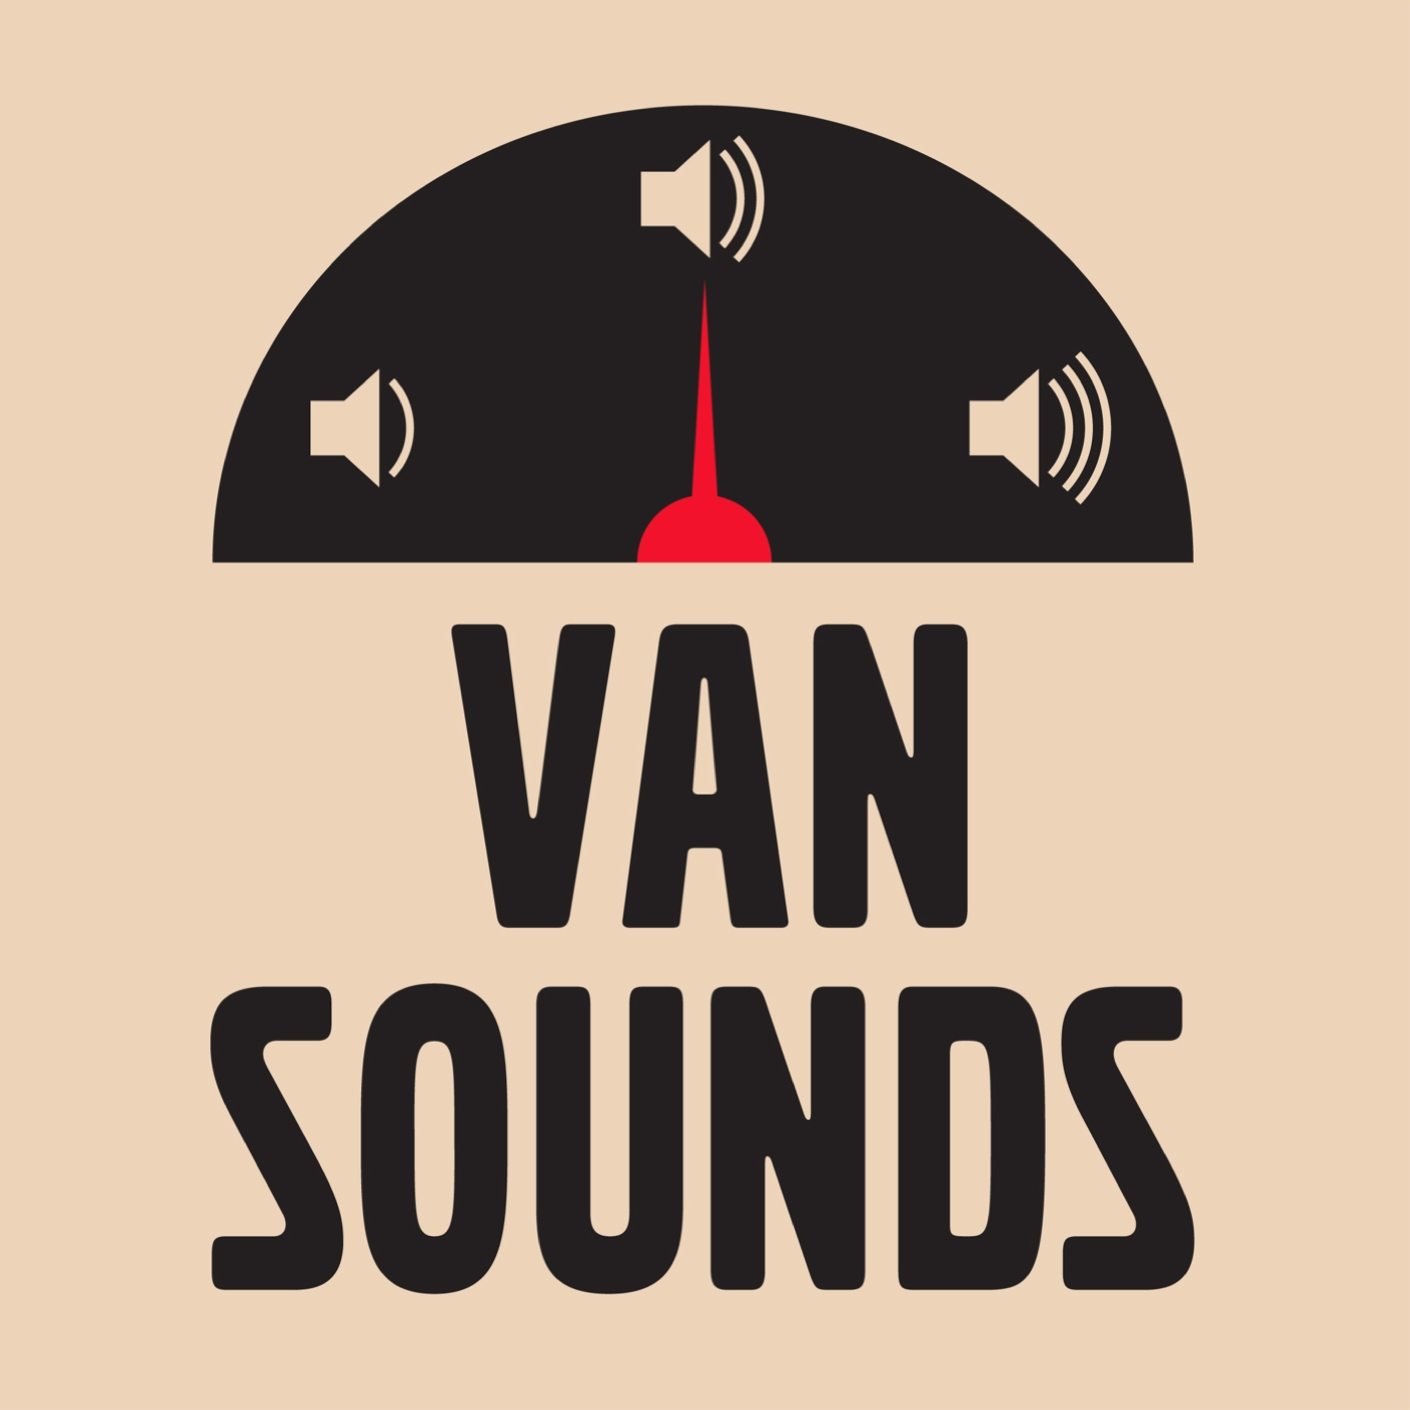 Van Sounds - Fil Corbitt